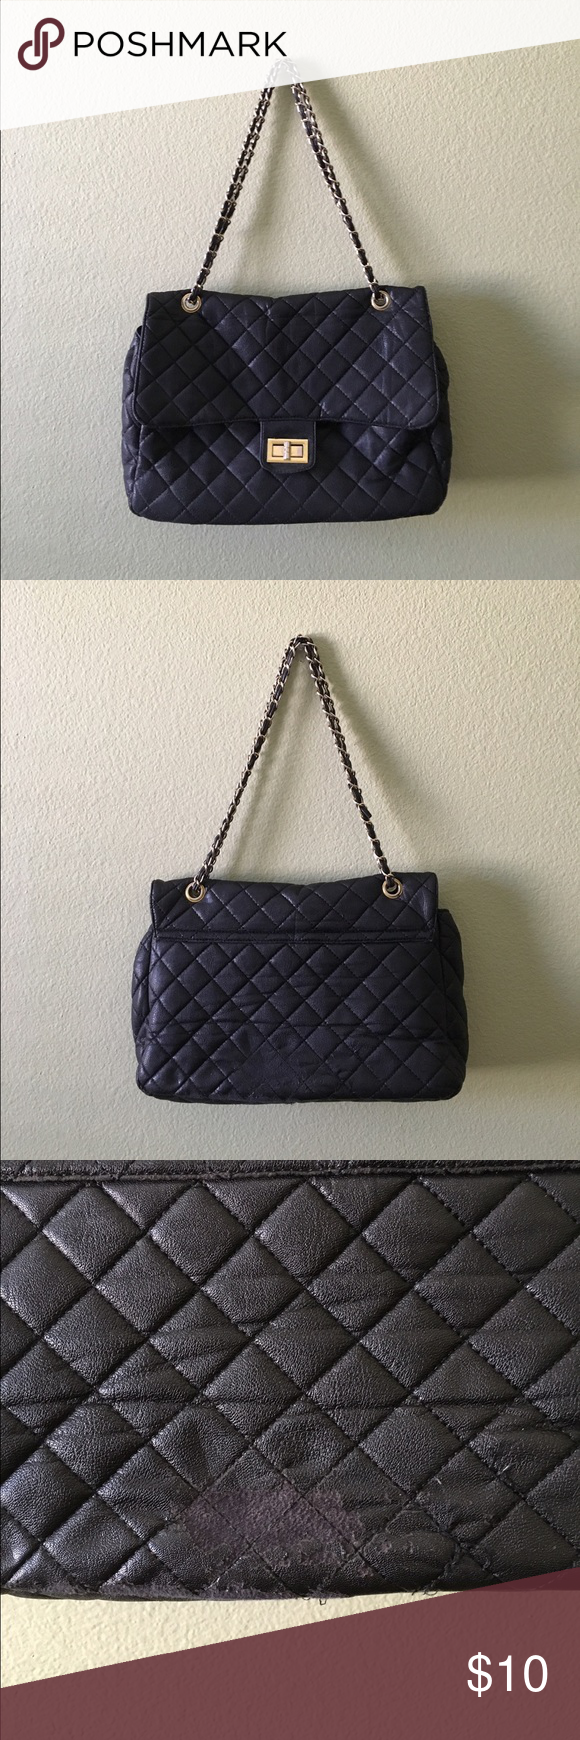 Black quilted shoulder bag Classic quilted design, roomy black handbag with gold hardware and chain strap(: big enough to hold notebooks! Minor wear as pictured, price reflects. Brandy Melville Bags